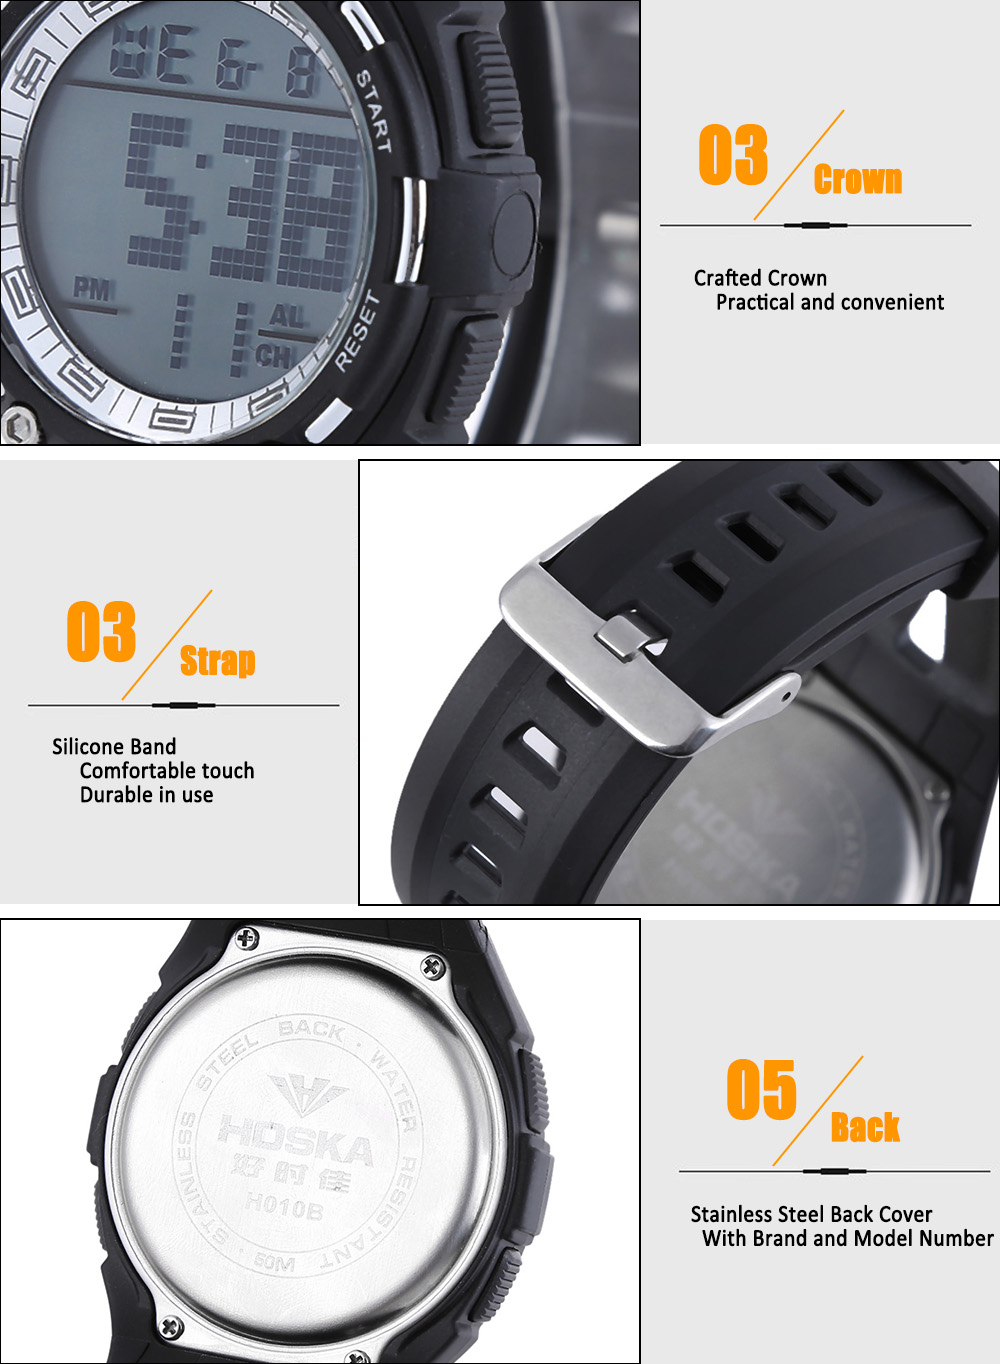 HOSKA H010B Multifunctional LED Digital Children Sport Watch Luminous Chronograph Calendar Alarm Week Display Water Resistance Wristwatch